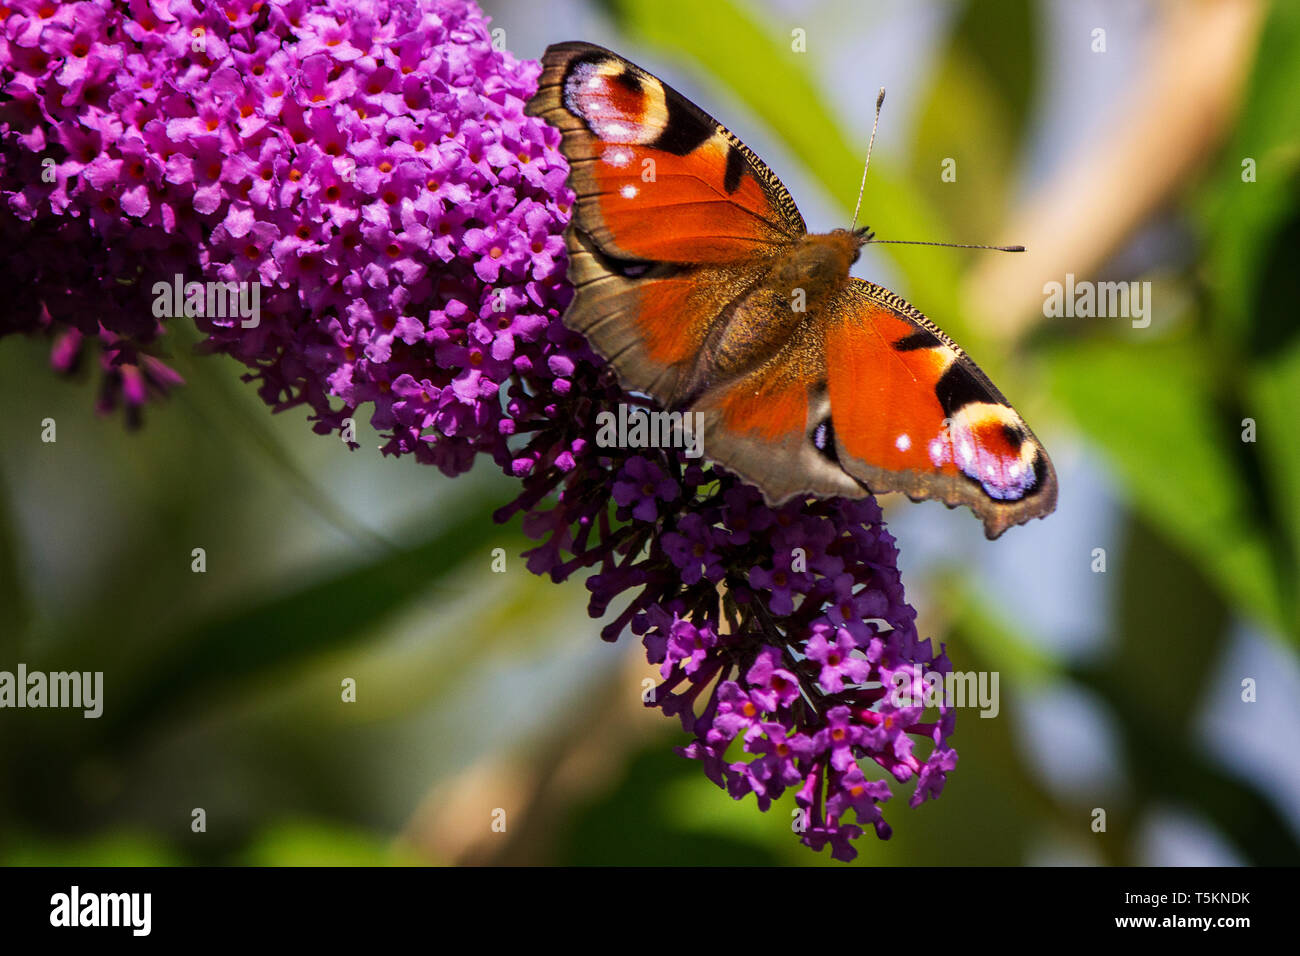 Schmetterling Tagpfauenauge auf Flieder im Garten / peacock butterfly on lilac in garden - Stock Image